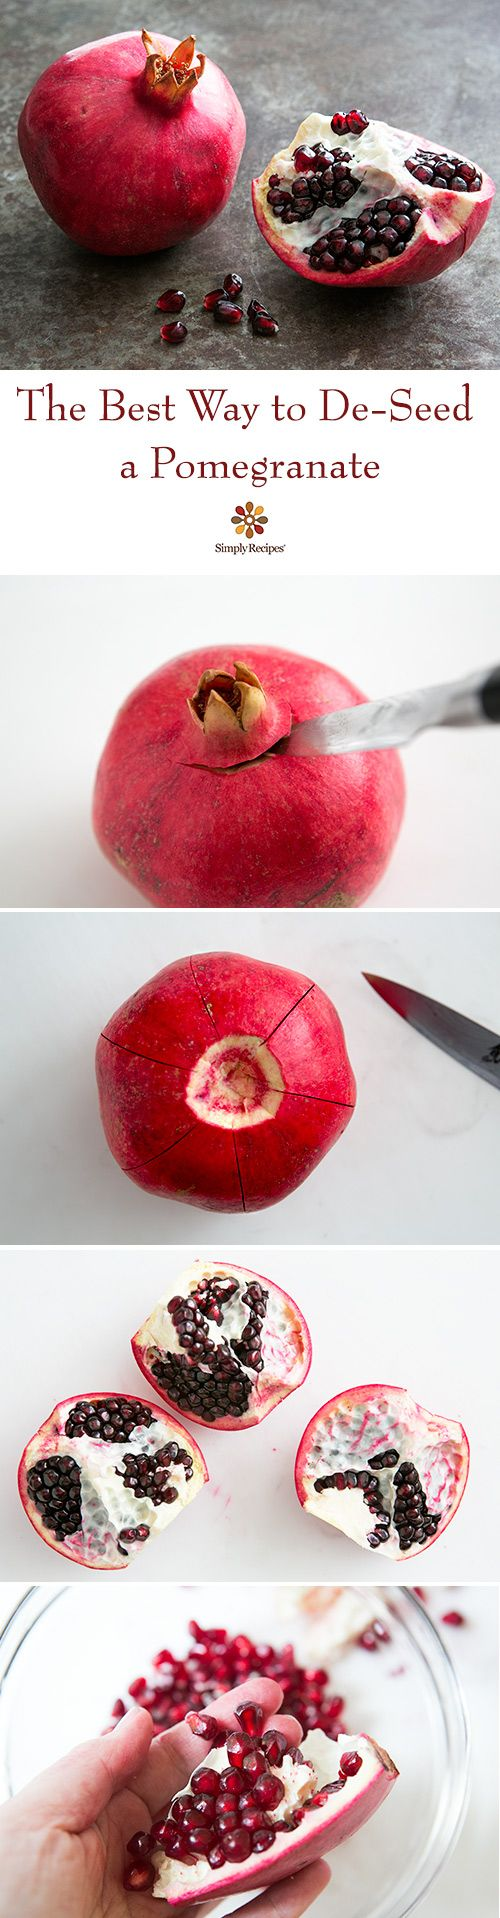 We grow pomegranates, and this is the best way we've found to cut and de-seed them, quickly and easily, with minimal mess, and no cut or bruised arils. On SimplyRecipes.com #HowTo